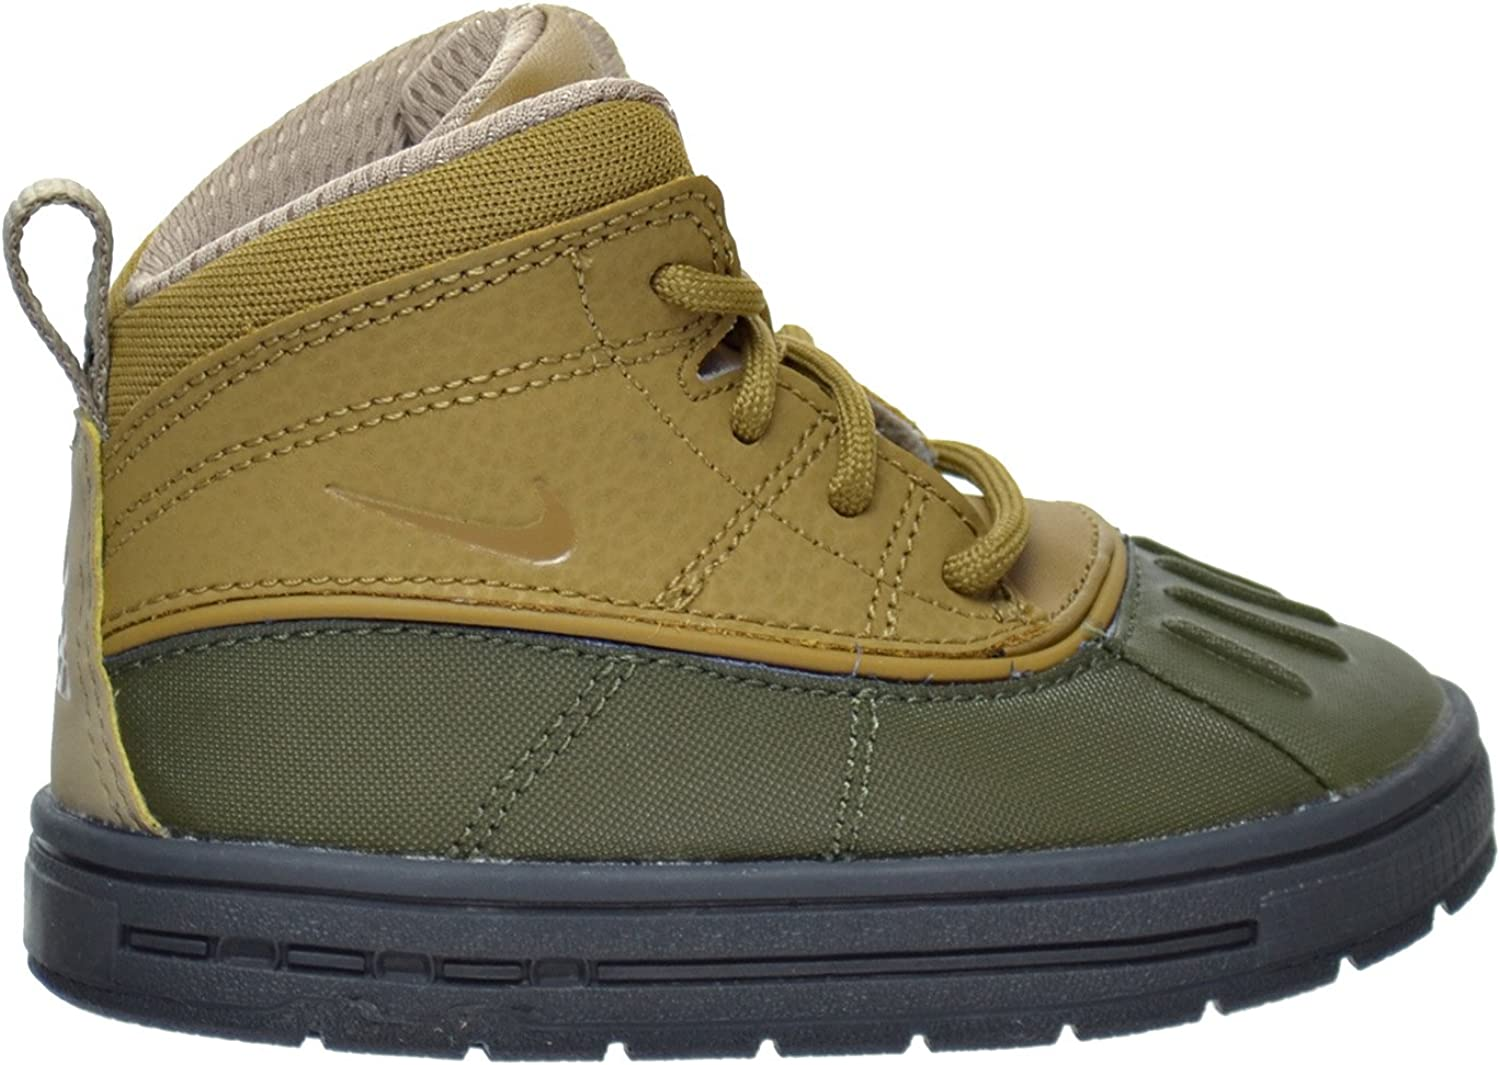 NIKE Woodside 2 High Cargo Khaki Golden Beige-Khaki (Toddler) (5 M US Toddler)